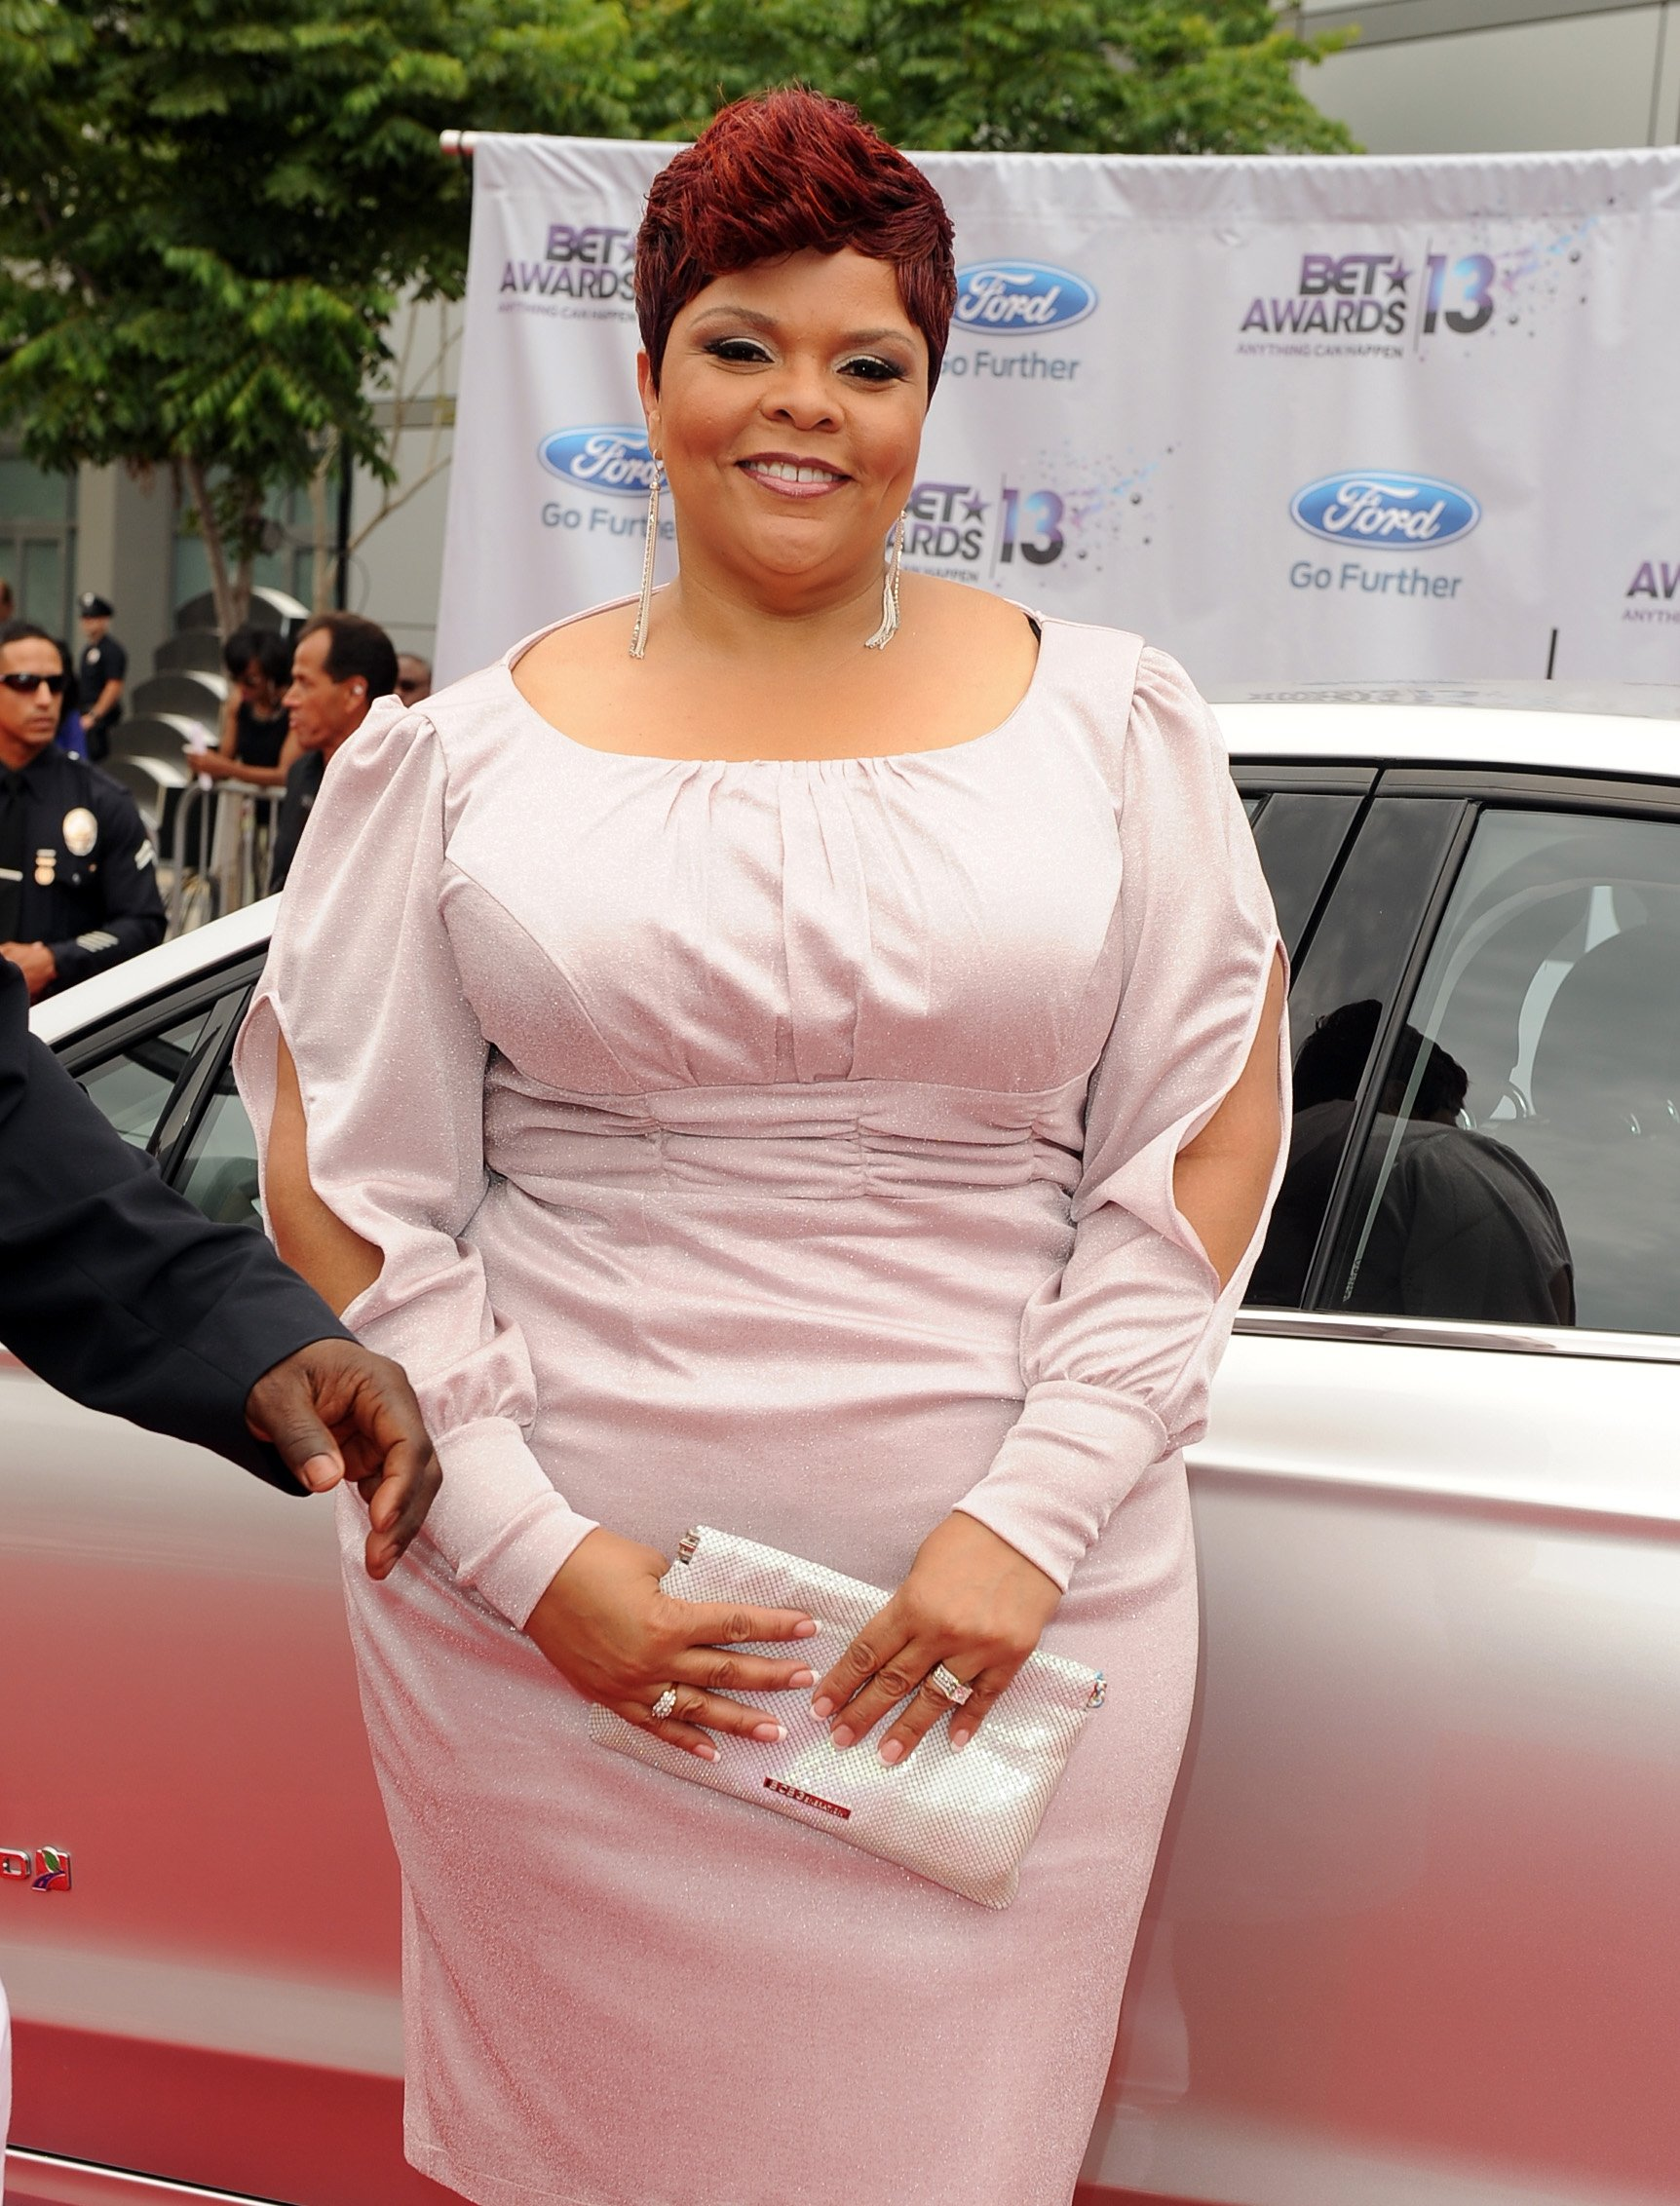 Tamela Mann attends the Ford Red Carpet at the 2013 BET Awards at Nokia Theatre L.A. Live on June 30, 2013. | Photo: Getty Images